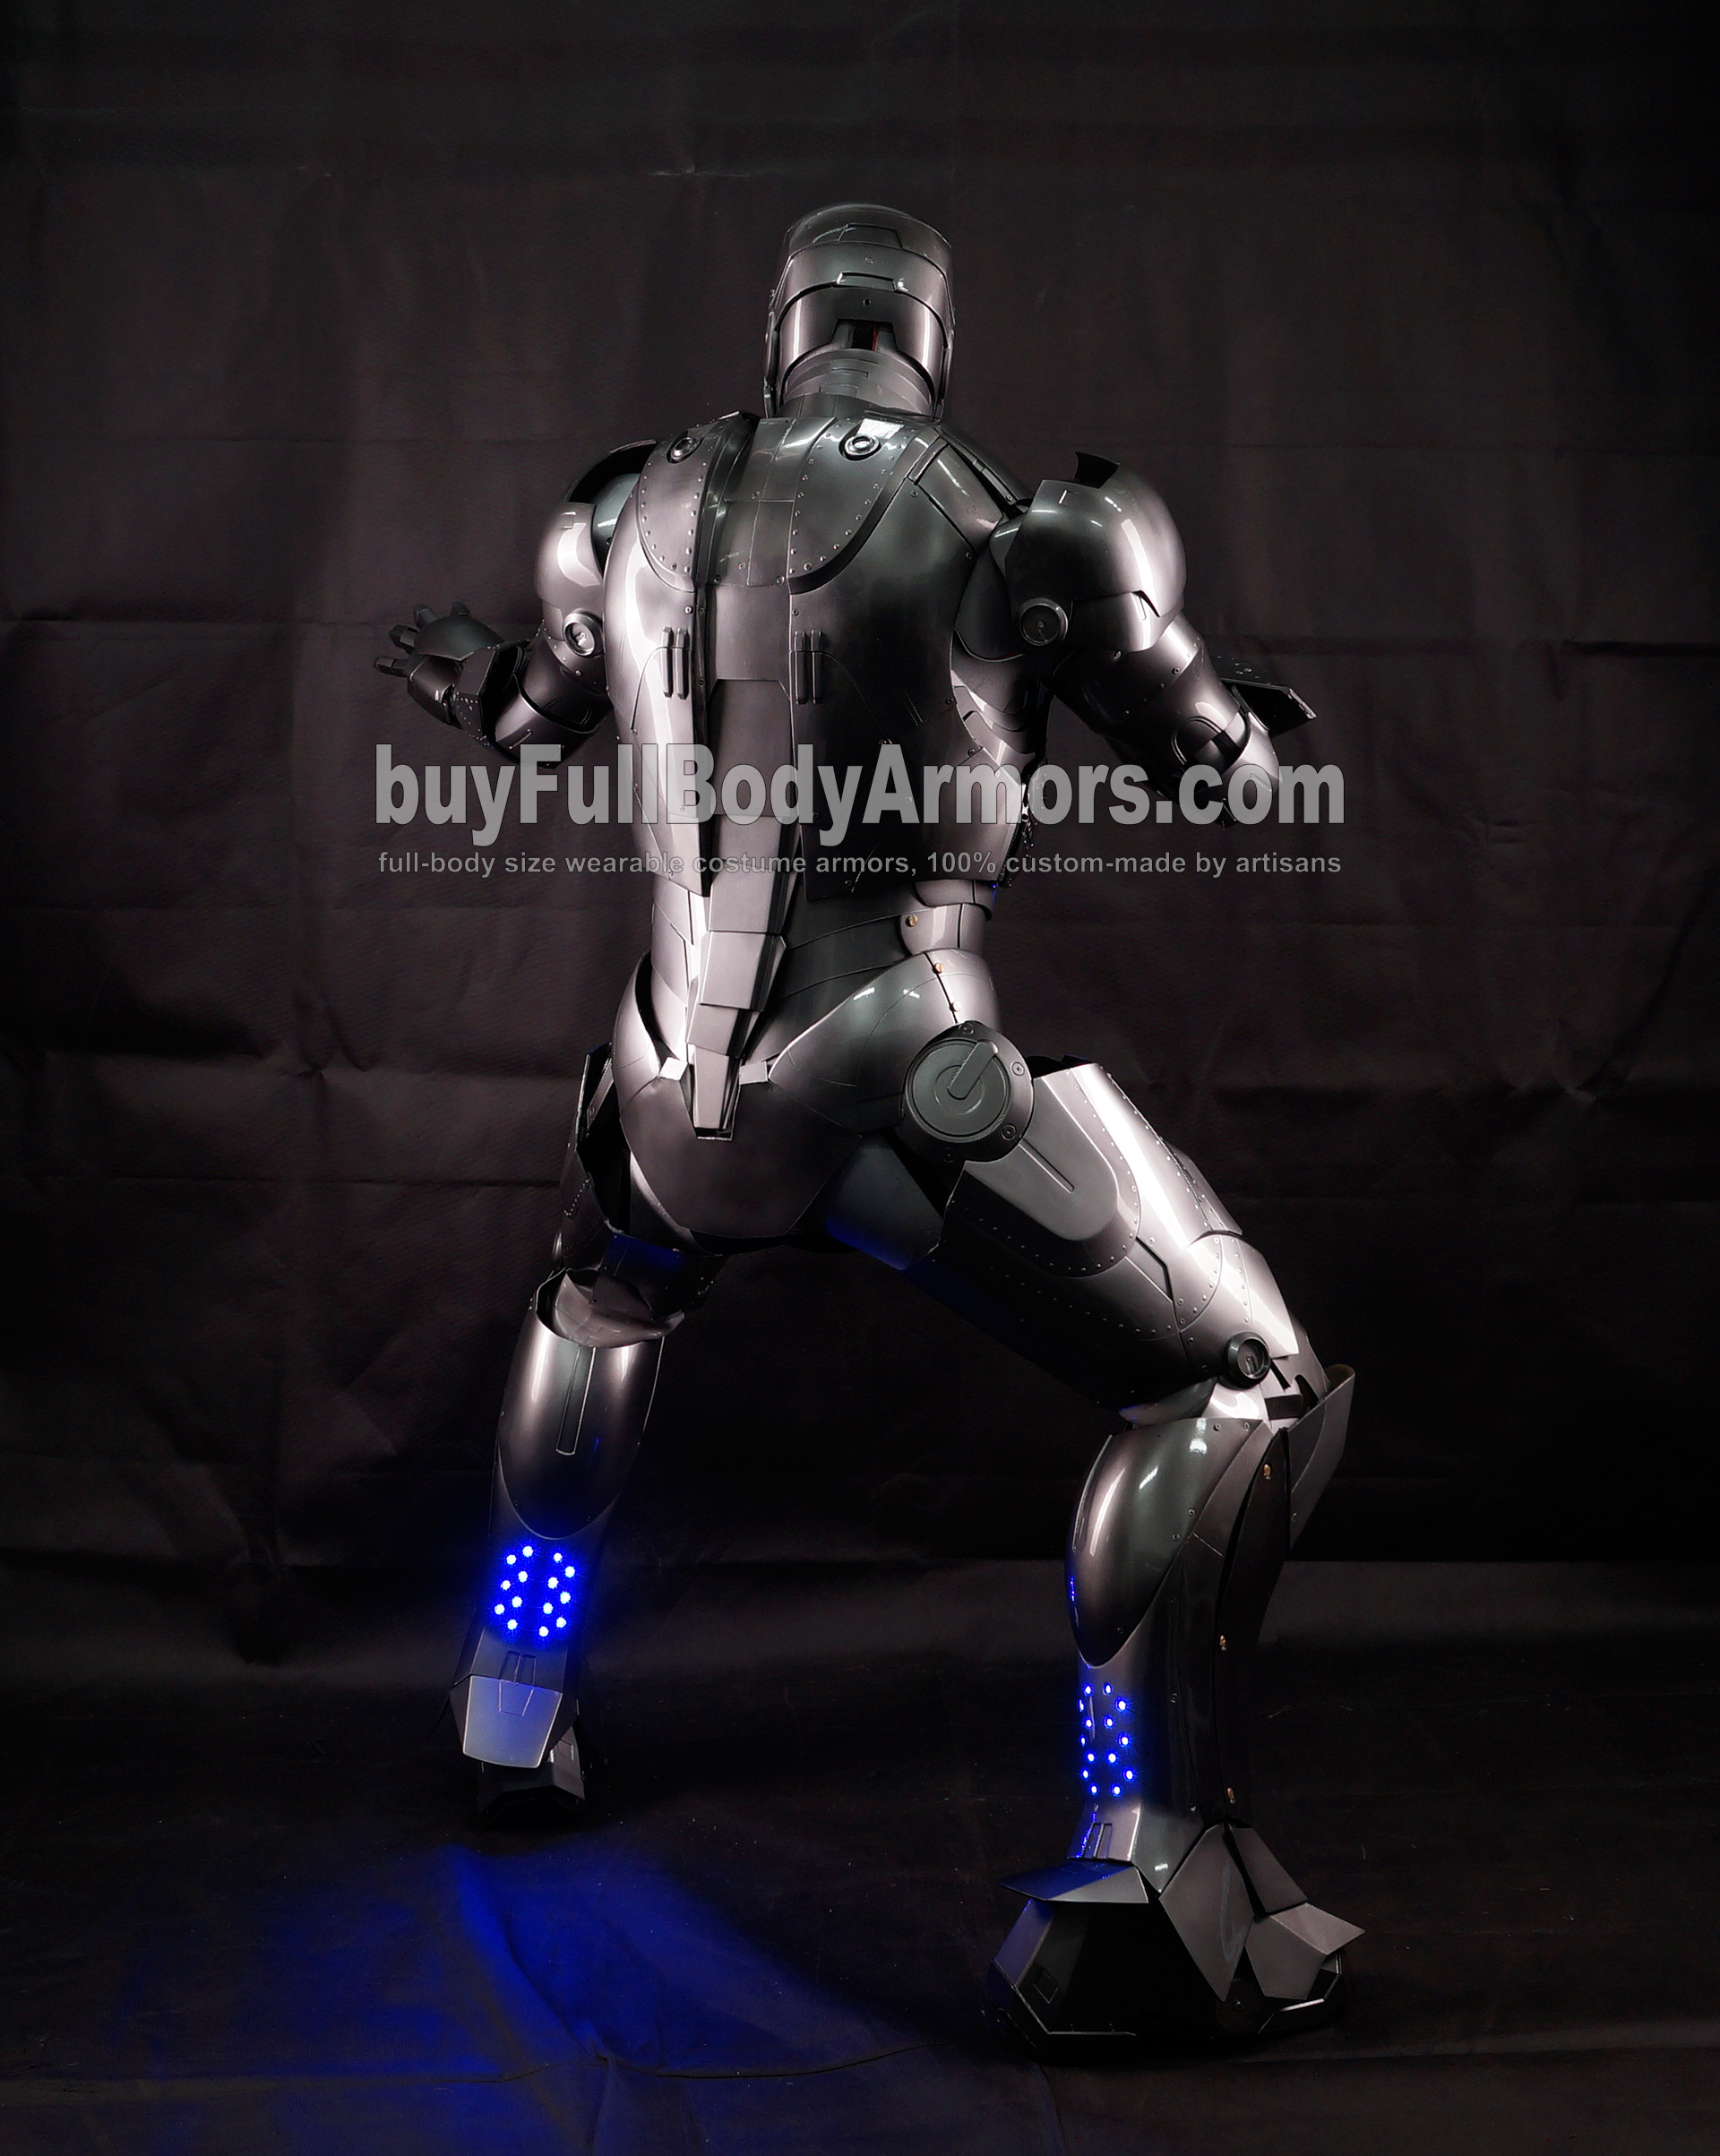 High Definition Photos of the Wearable Iron Man Mark 2 II Armor Costume Suit 10